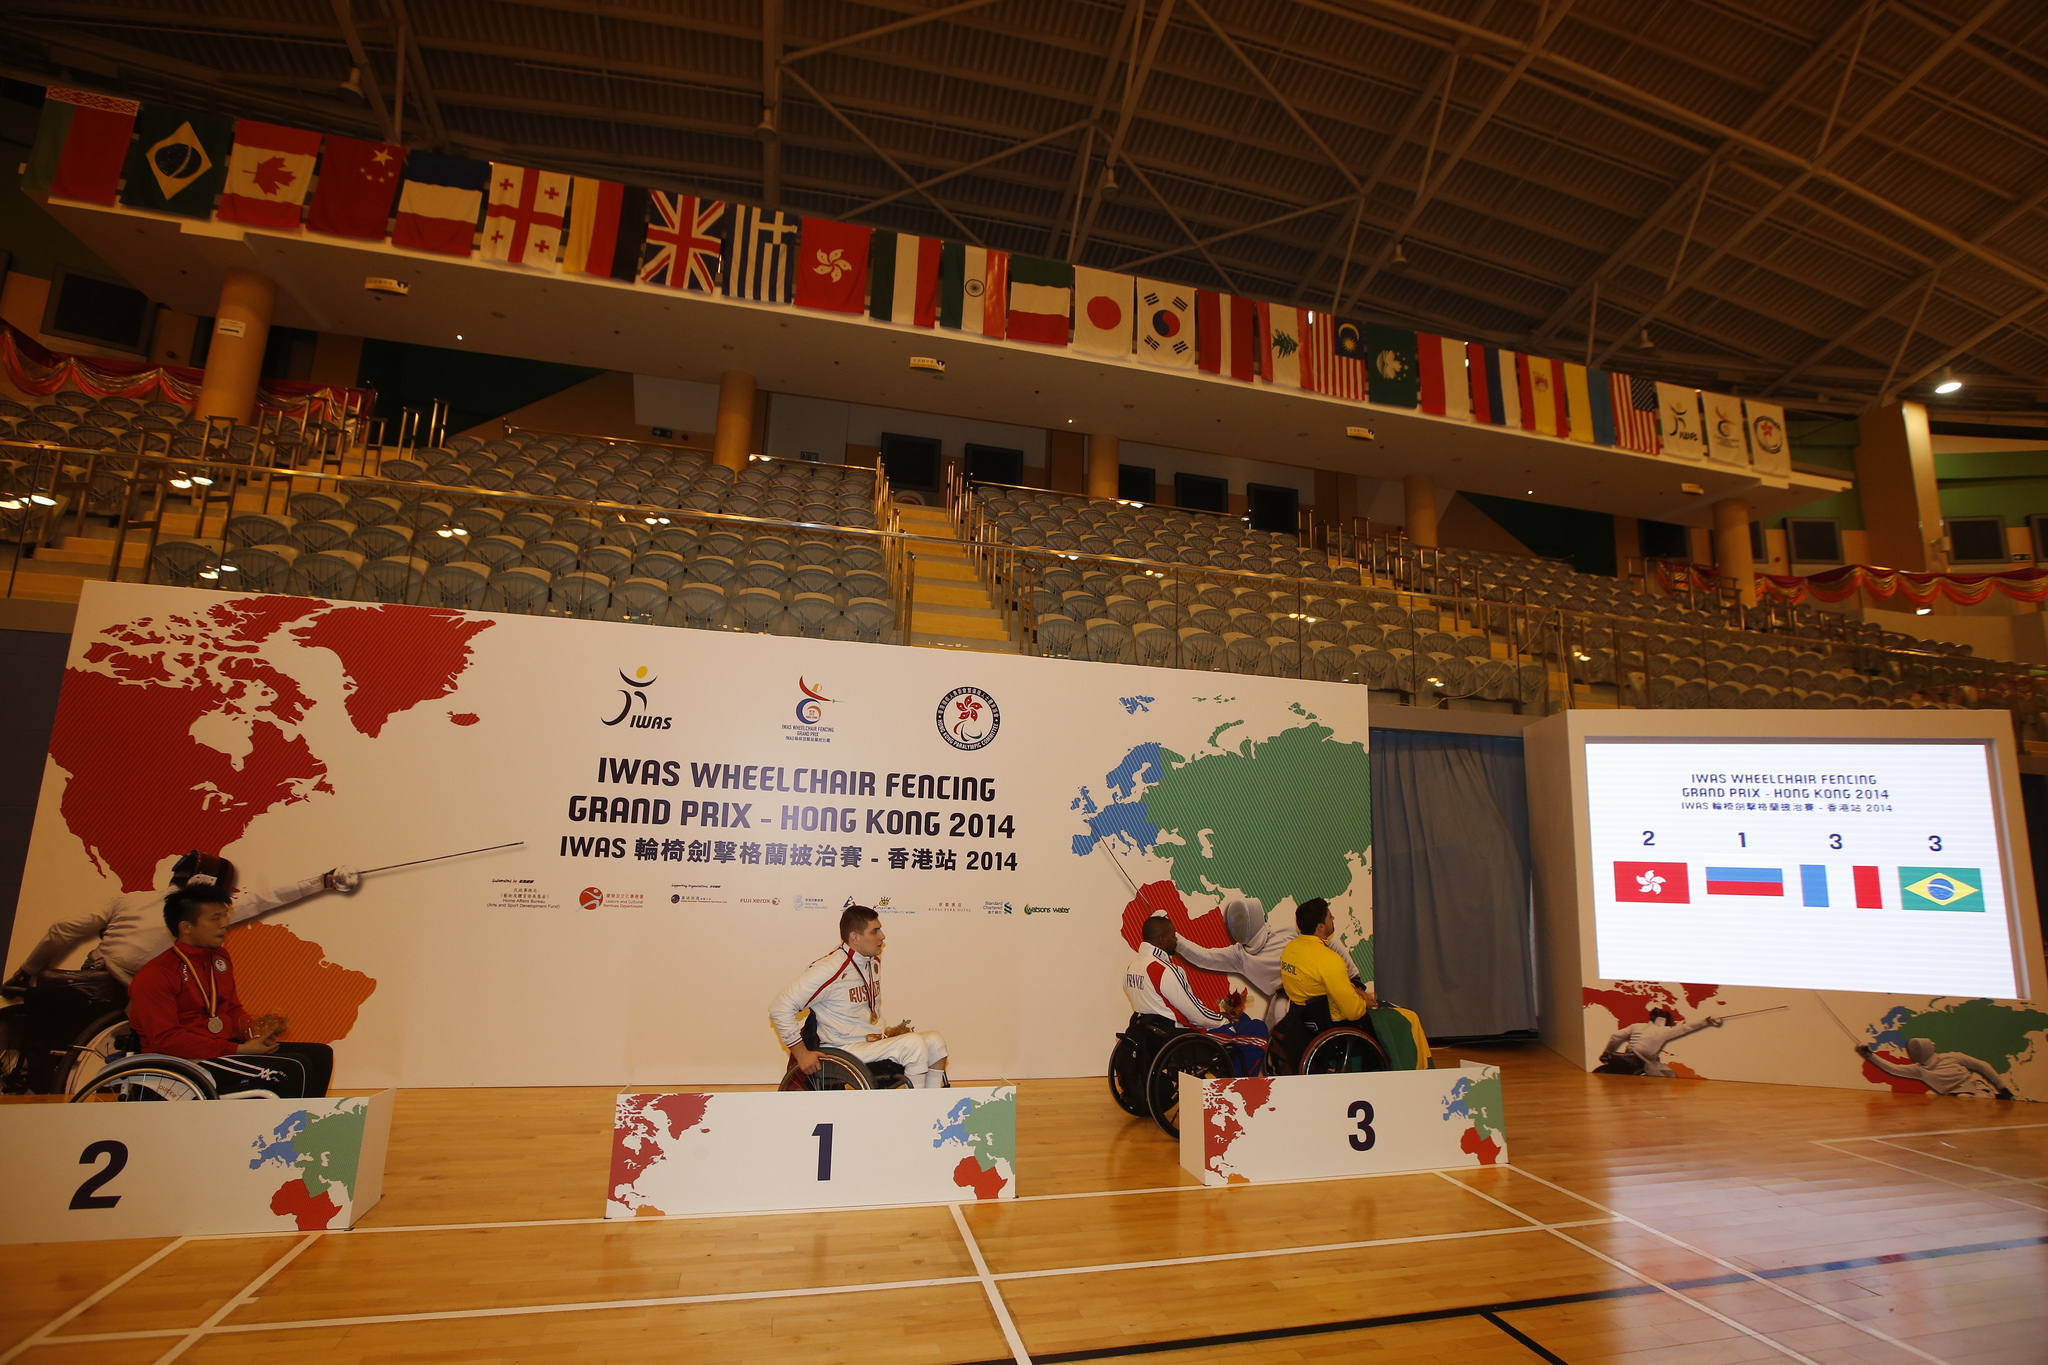 IWAS Wheelchair Fencing Grand Prix 2014 Second day Photo